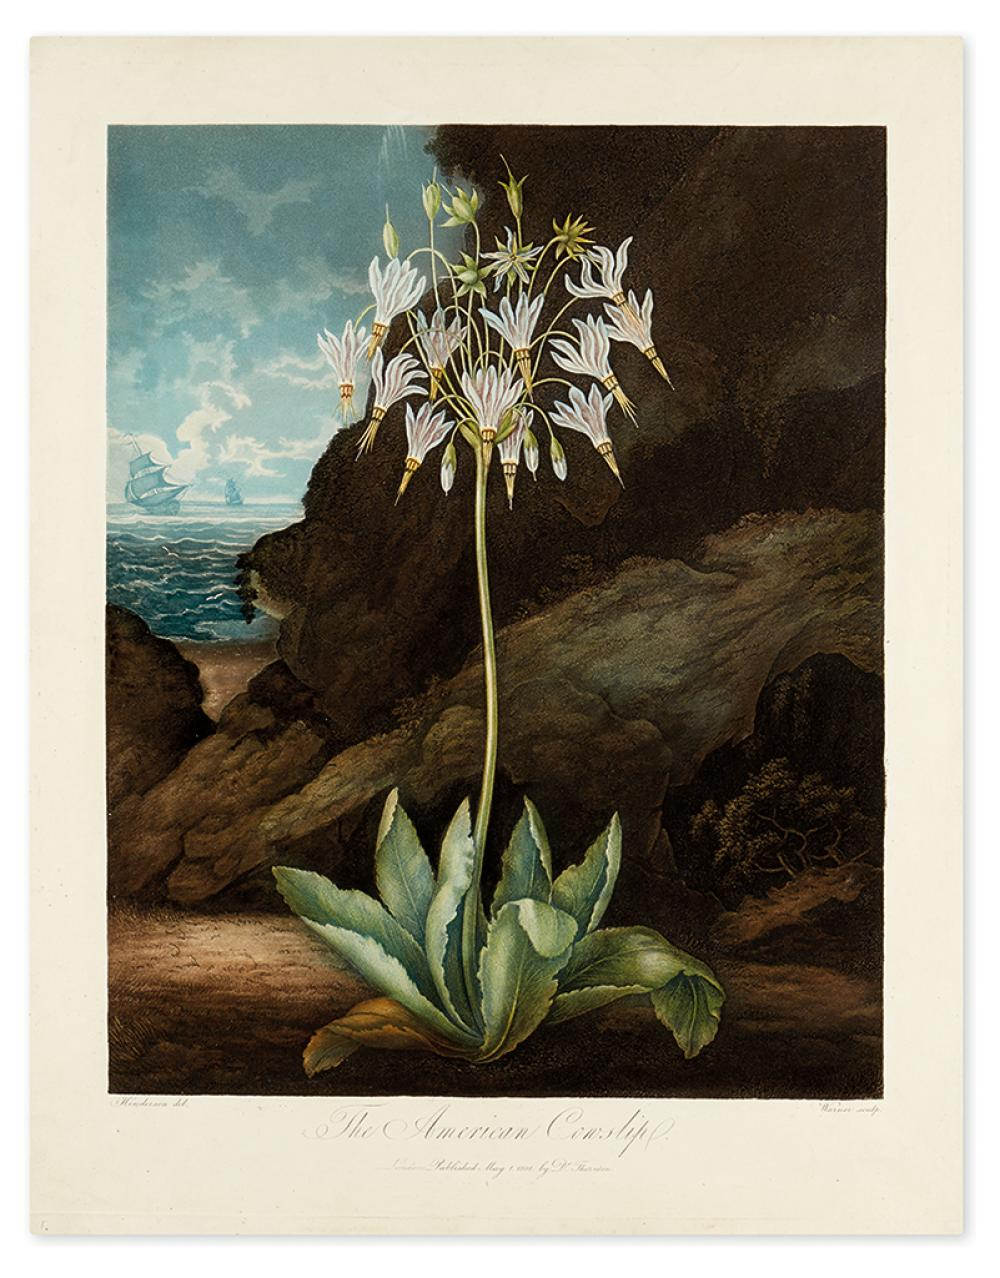 THORNTON, ROBERT JOHN. The American Cowslip.